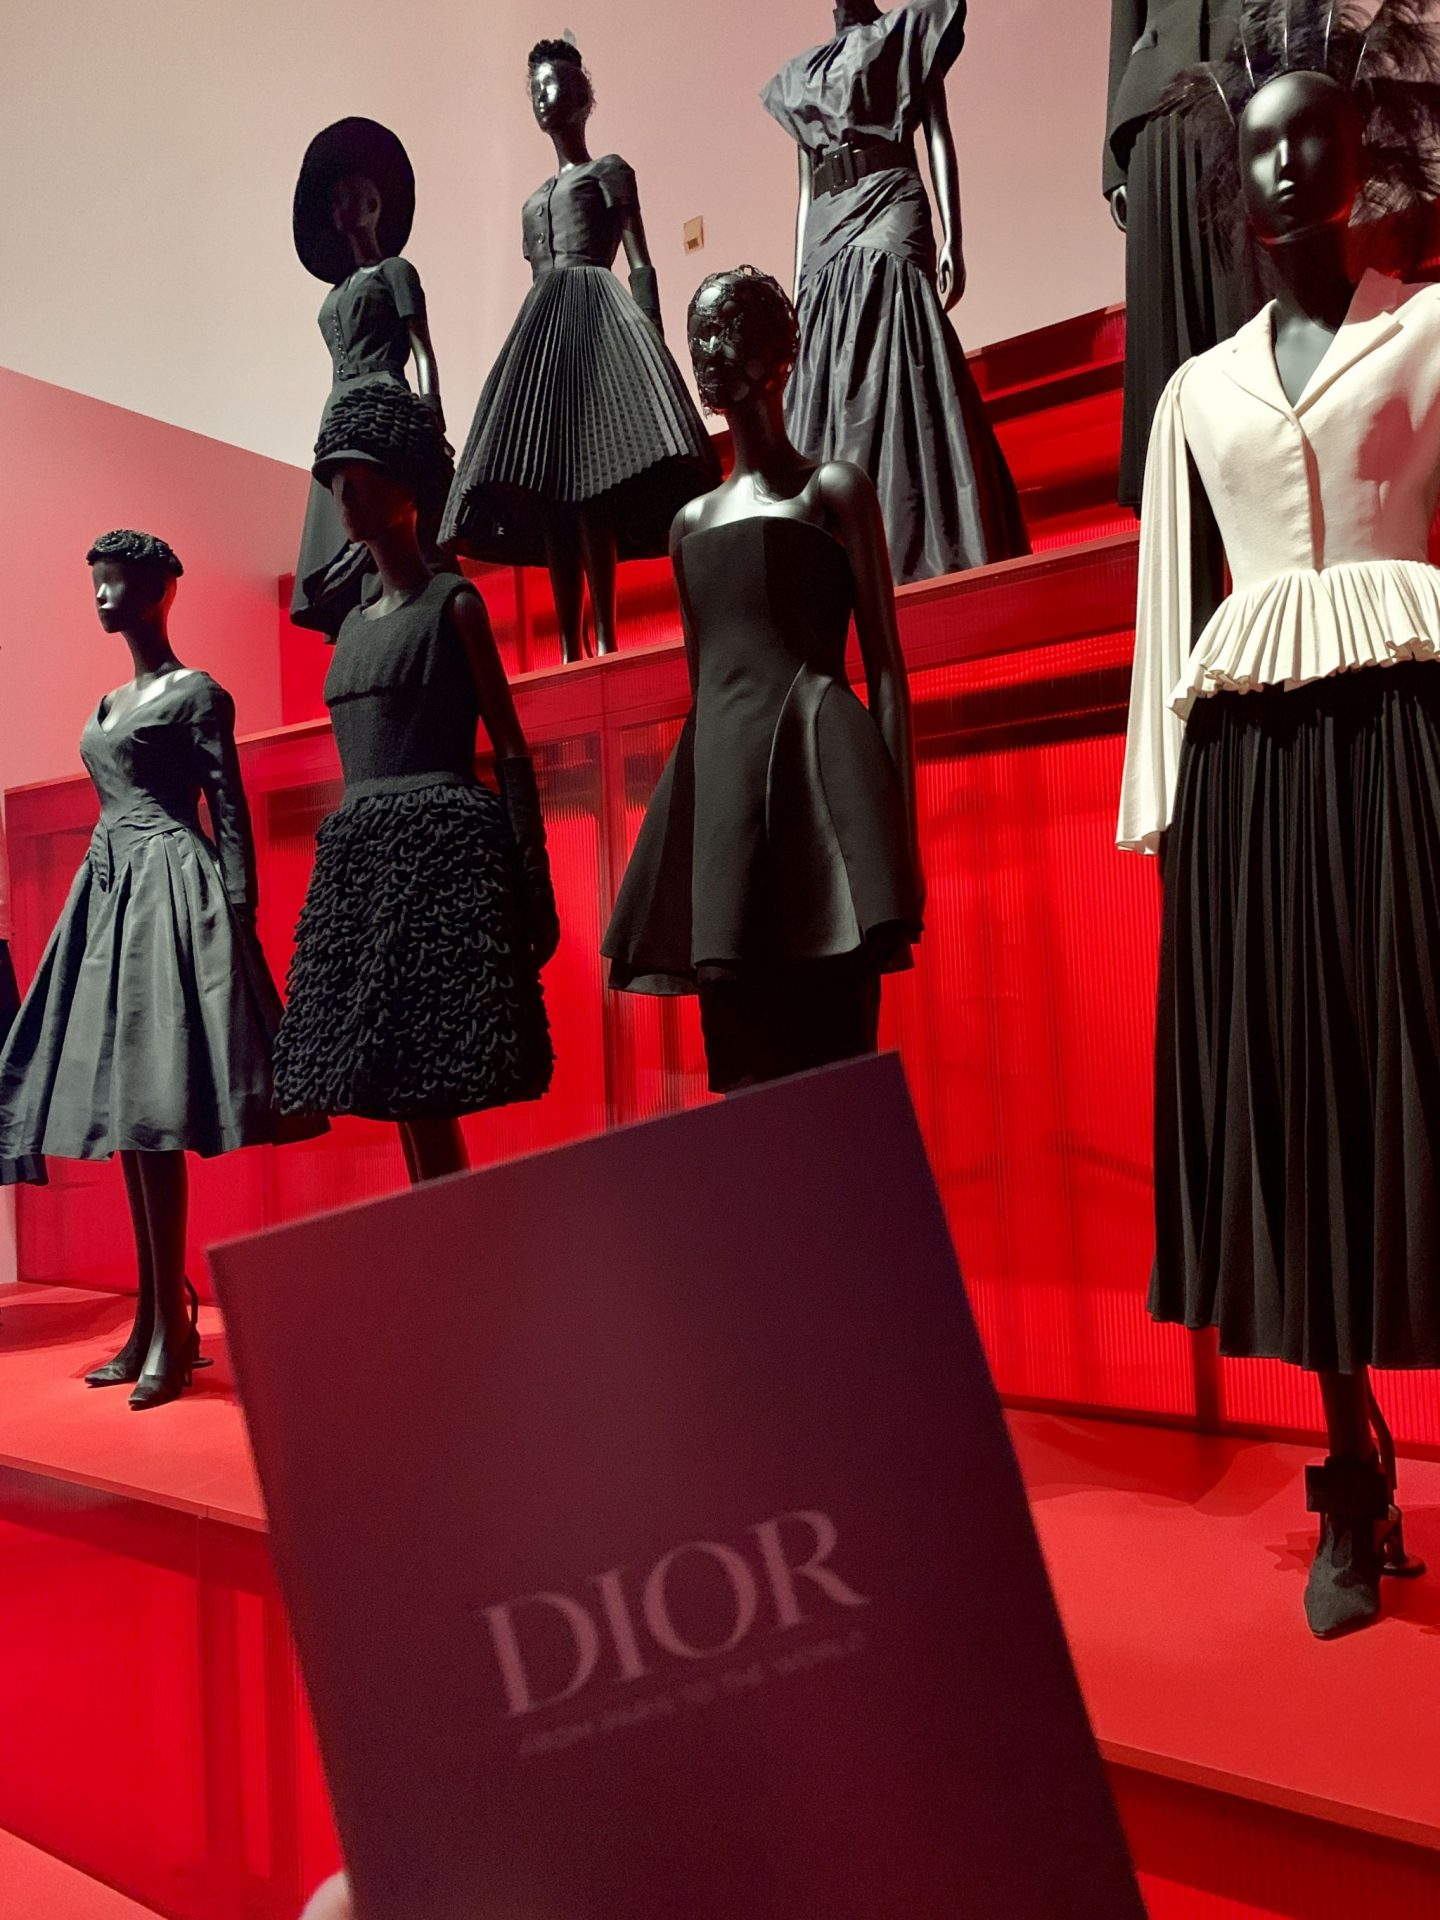 Christian Dior Art Exhibit at the Dallas Museum of Art black